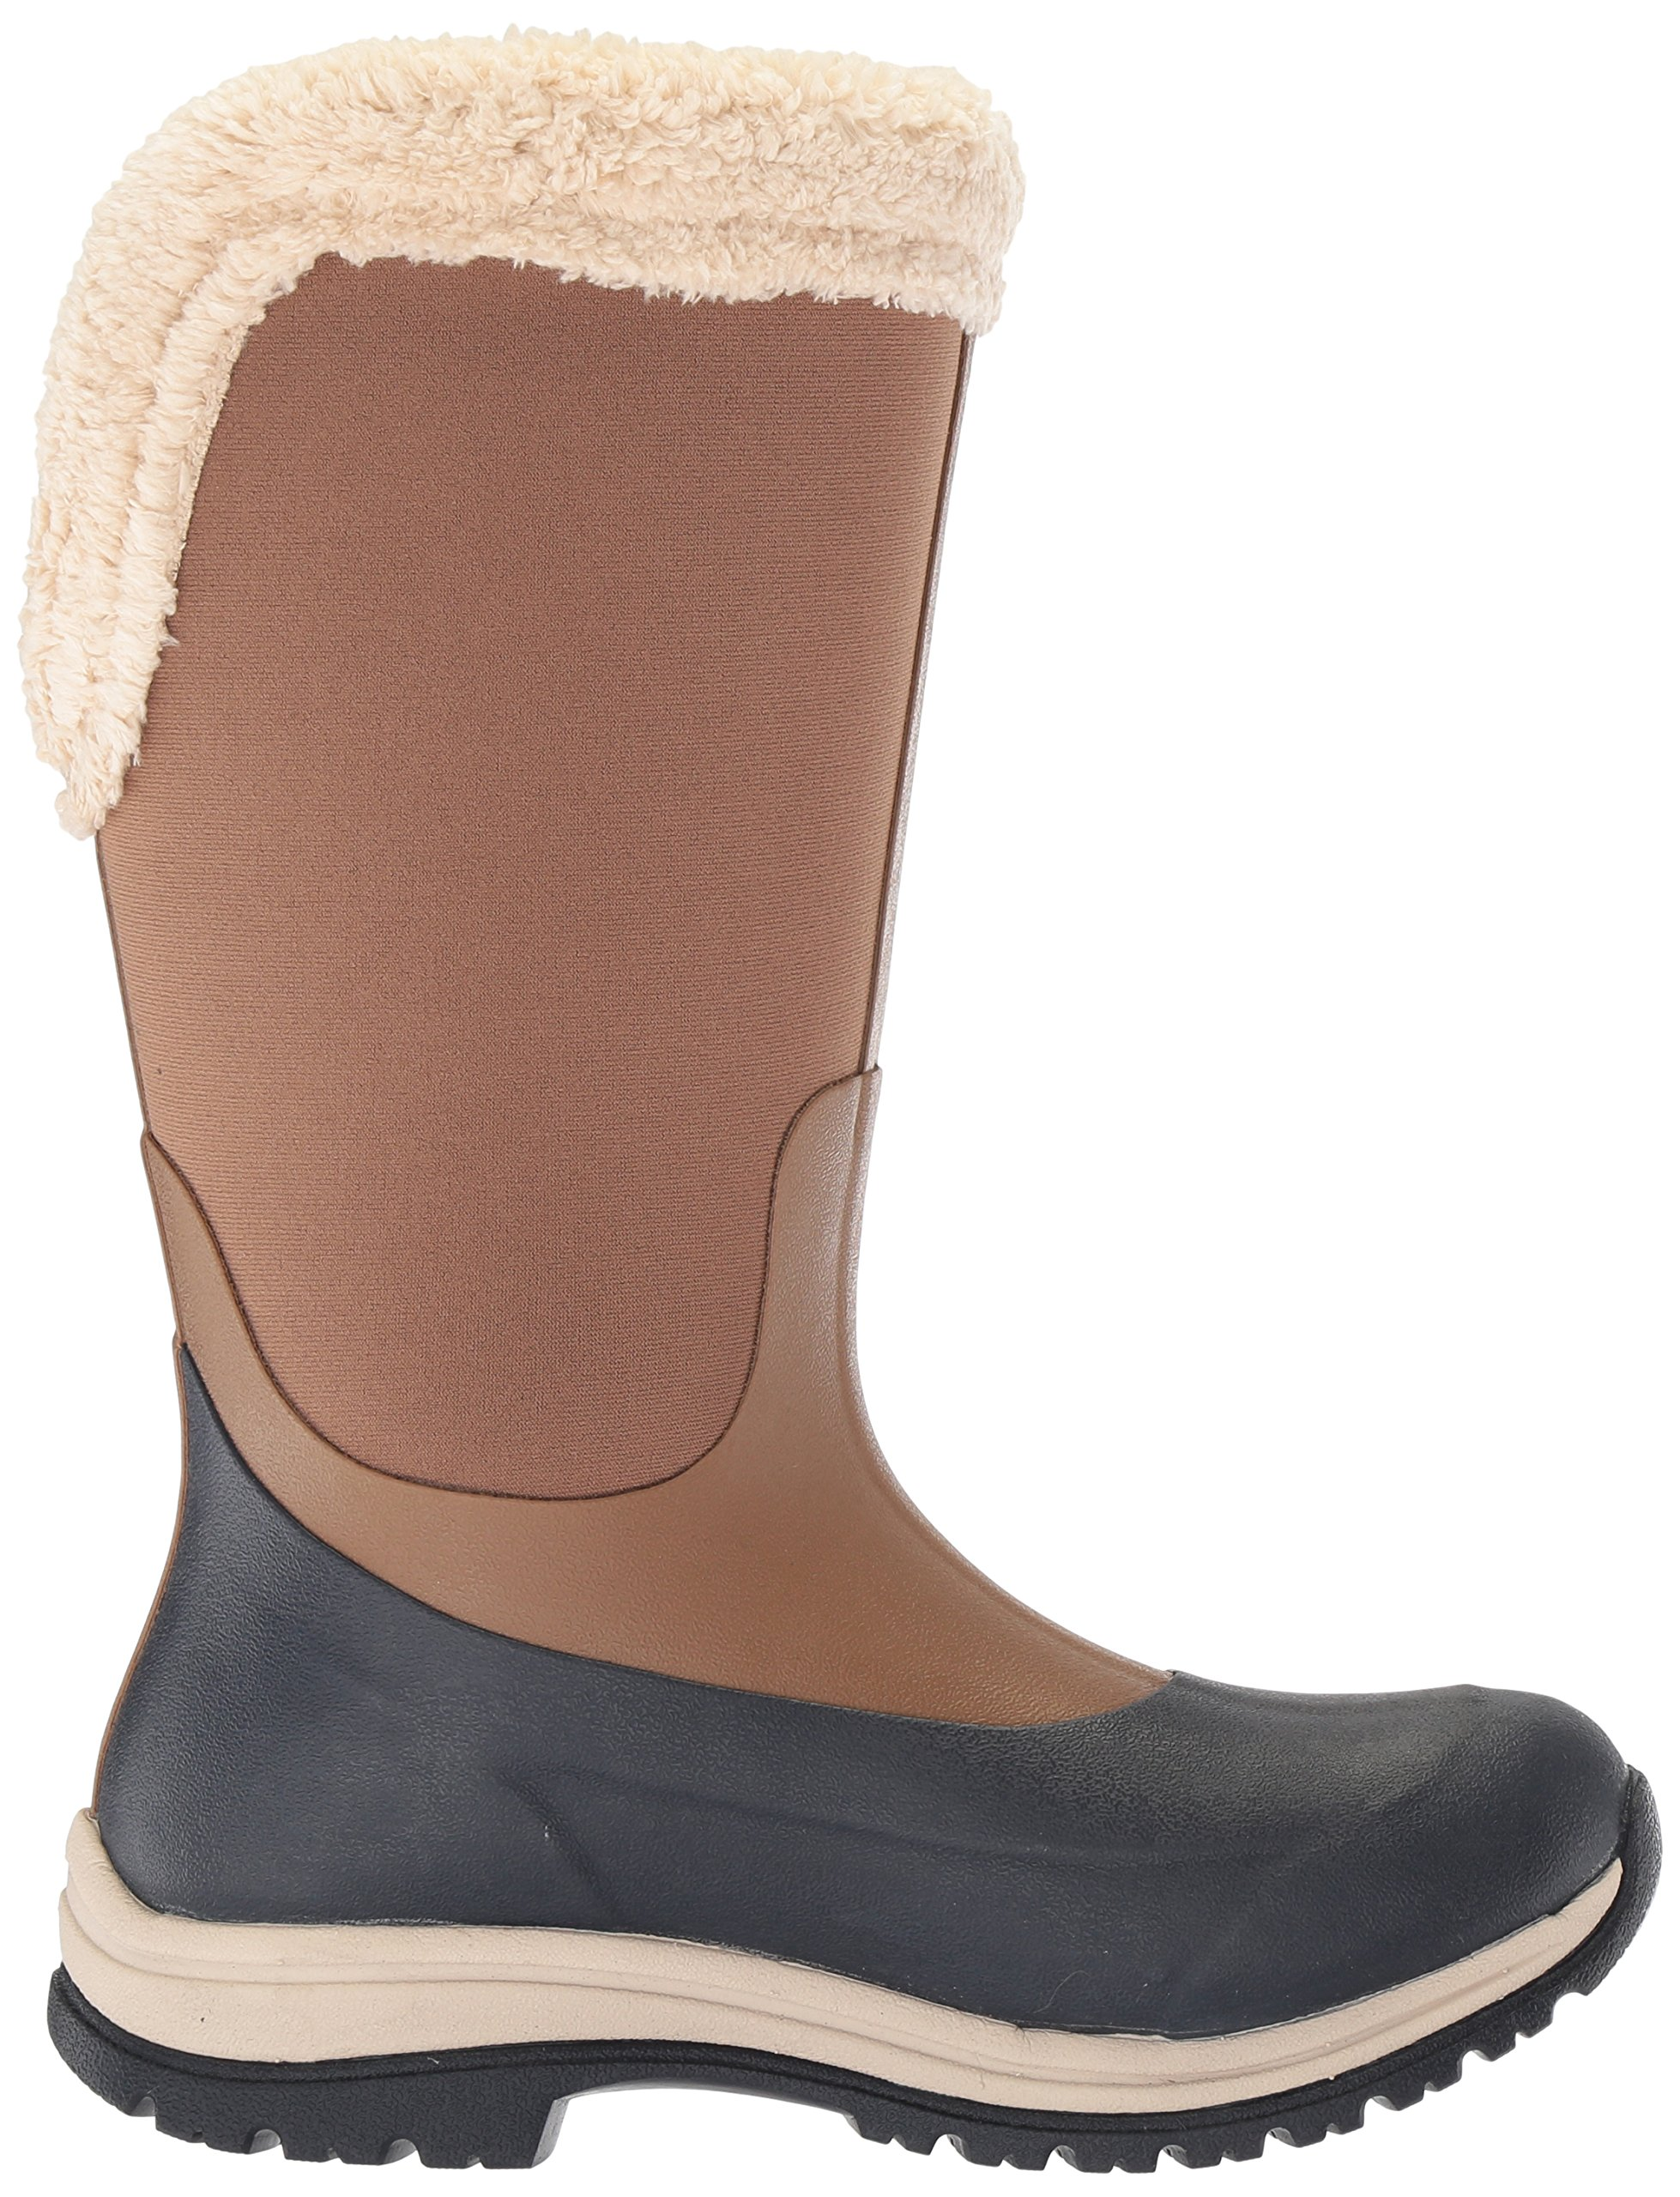 Muck Boot Women's Apres Tall (15'') Work Boot, Otter/Total Eclipse, 8 M US by Muck Boot (Image #6)